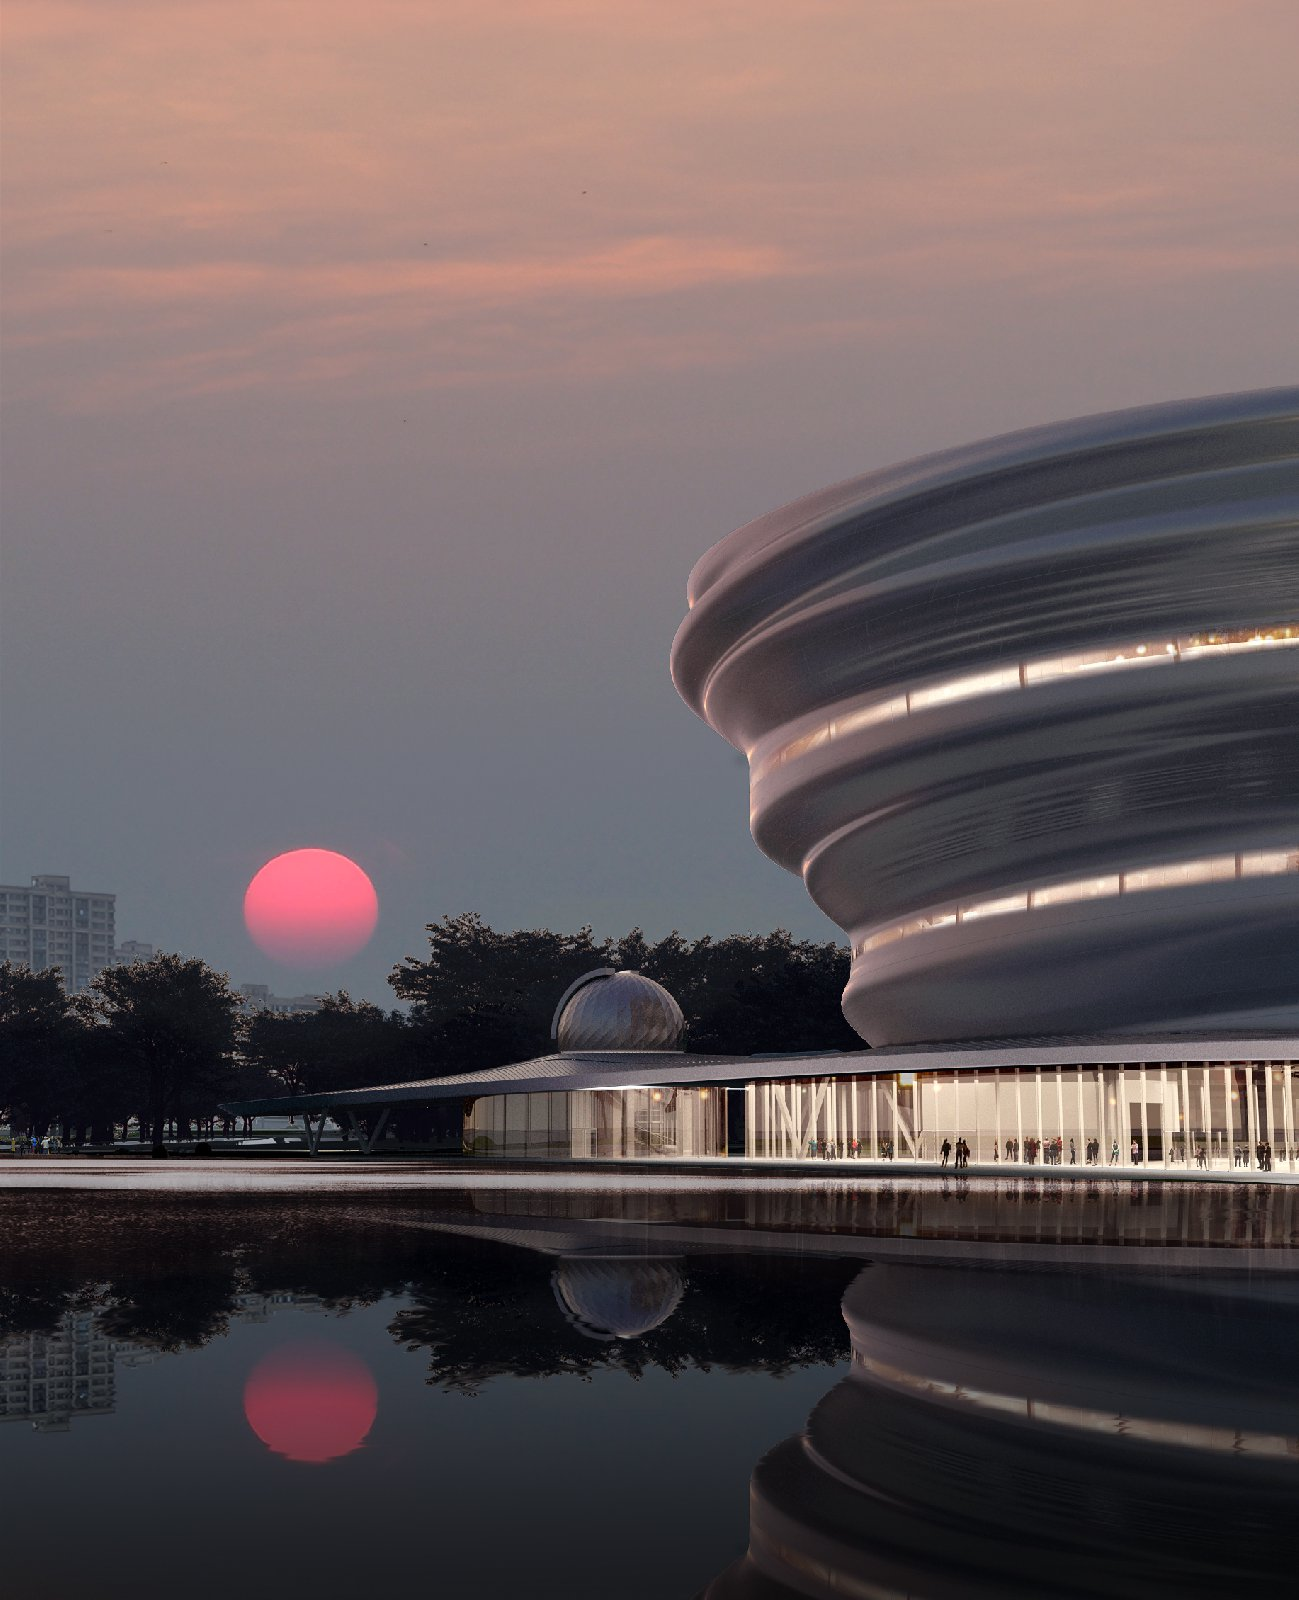 Hainan Science and Technology Museum